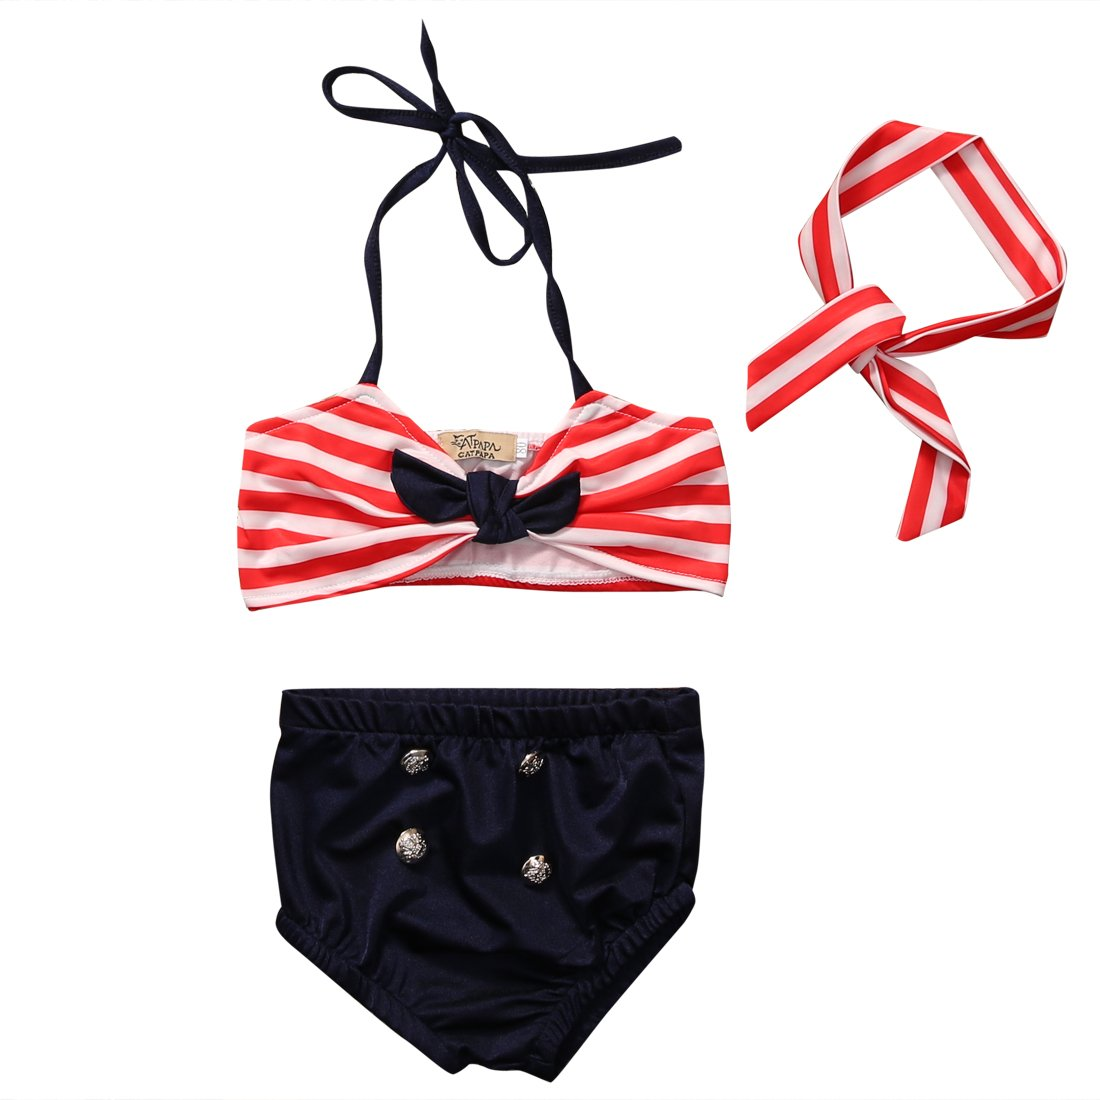 honeys Baby Girls 3pcs Swimwear Bikini Sets Halter Pom Top+Dot Bottom+Bow Headband